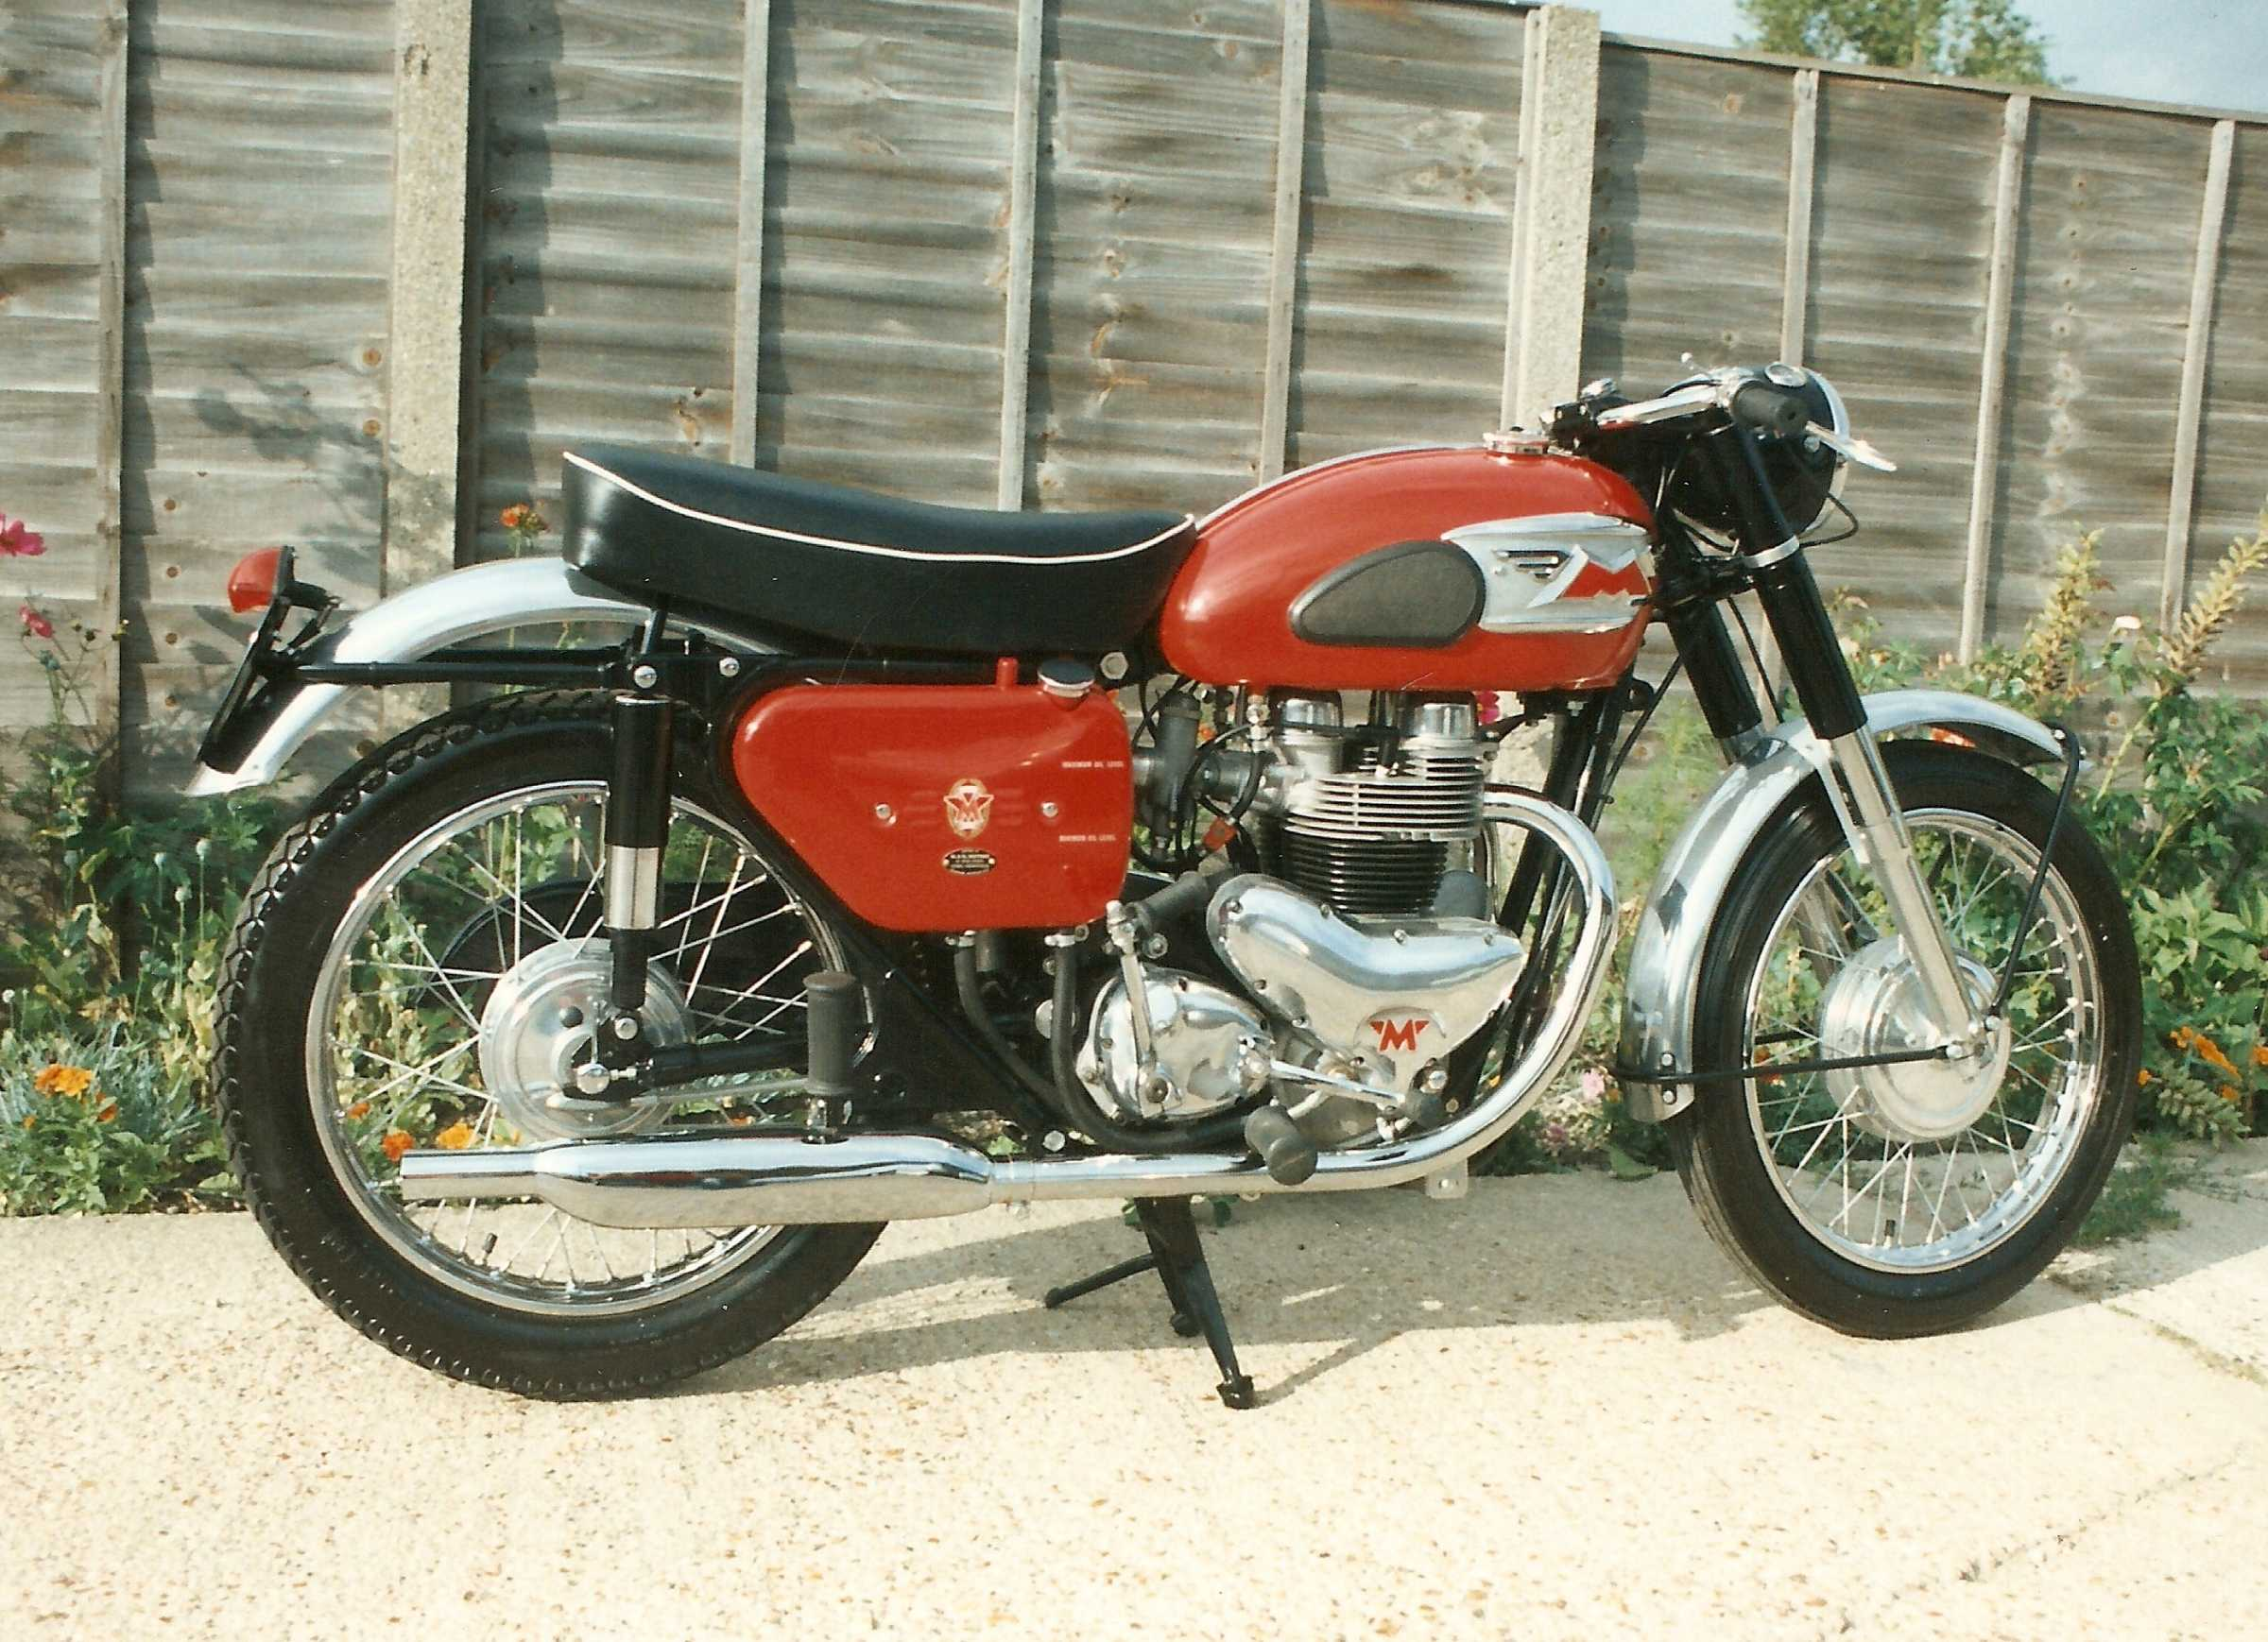 To this sporty Matchless G12 which was an unusual project in so far as it was one of the few restorables that was completely unmolested and still in original factory finish